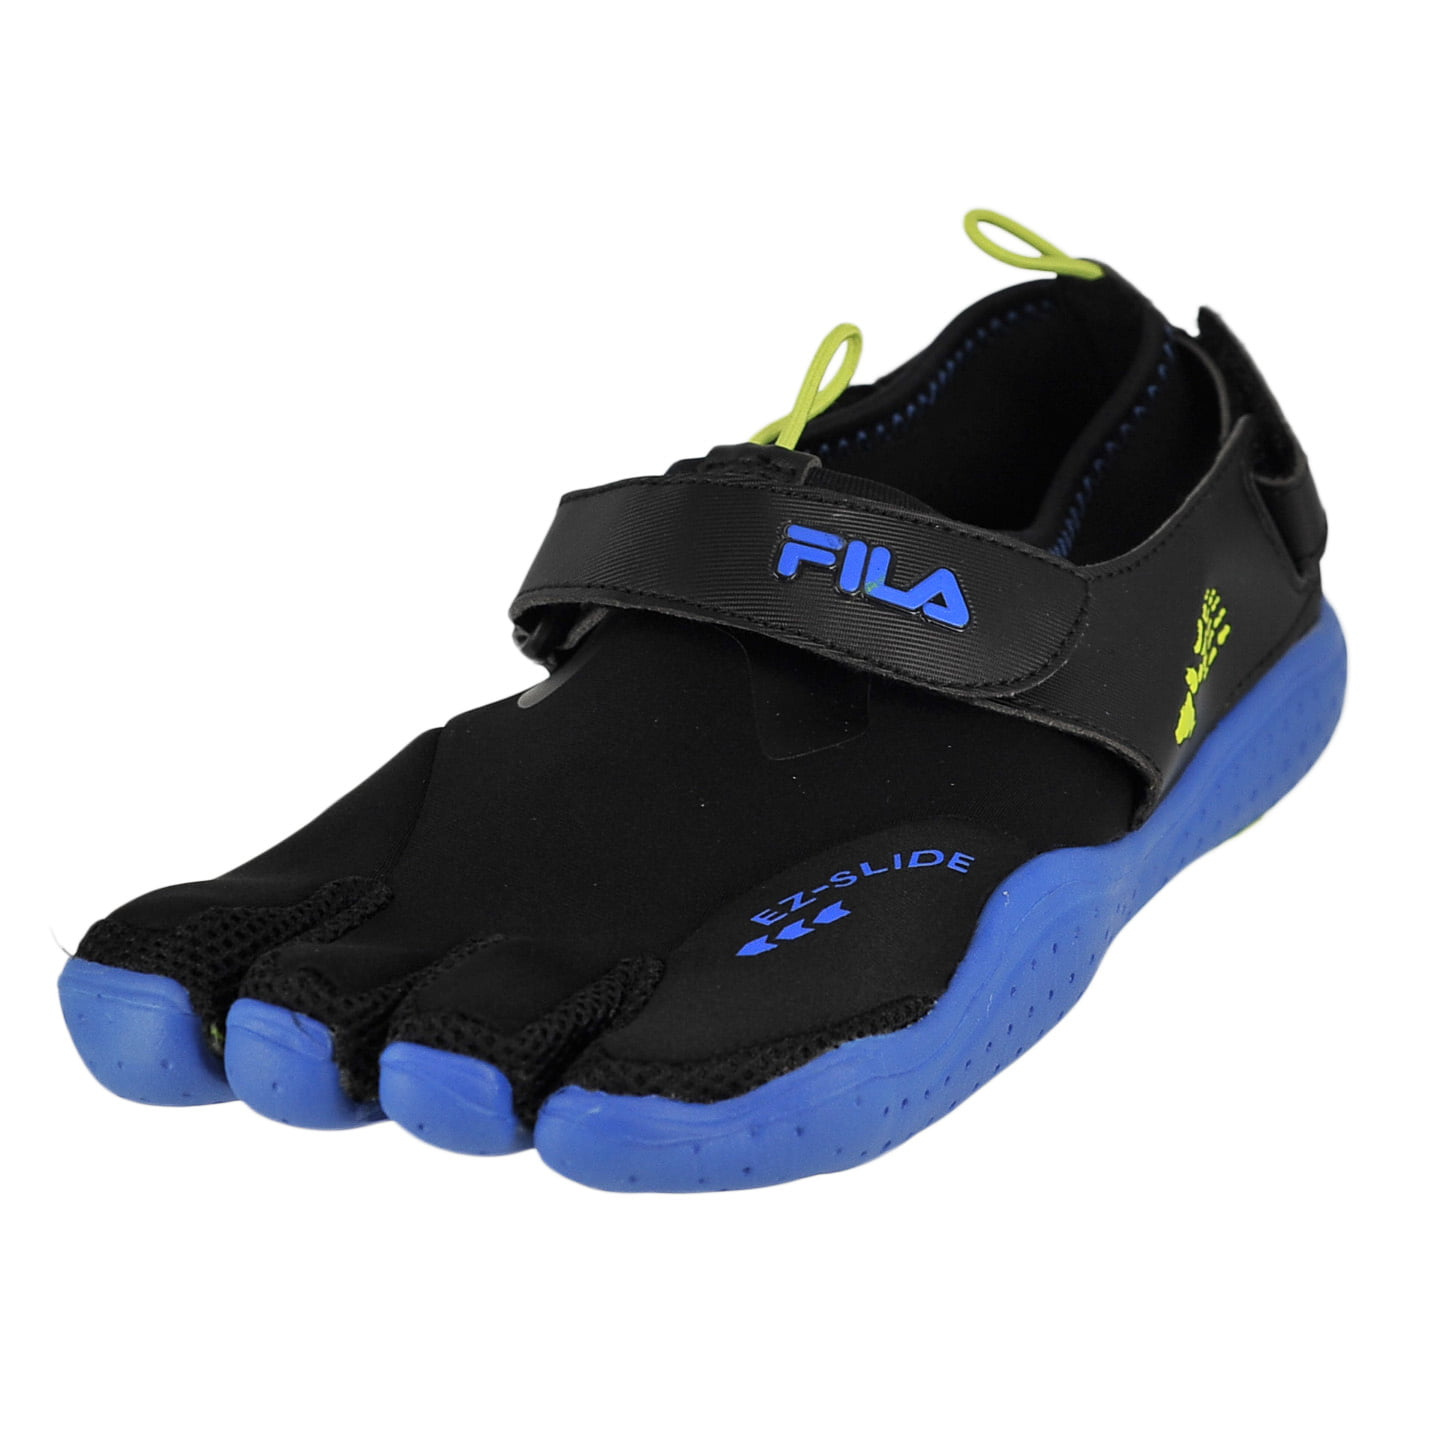 Fila Skele-Toes Ez Slide Drainage Black/Limepunch/Blue Mens Water Sports Size 10M